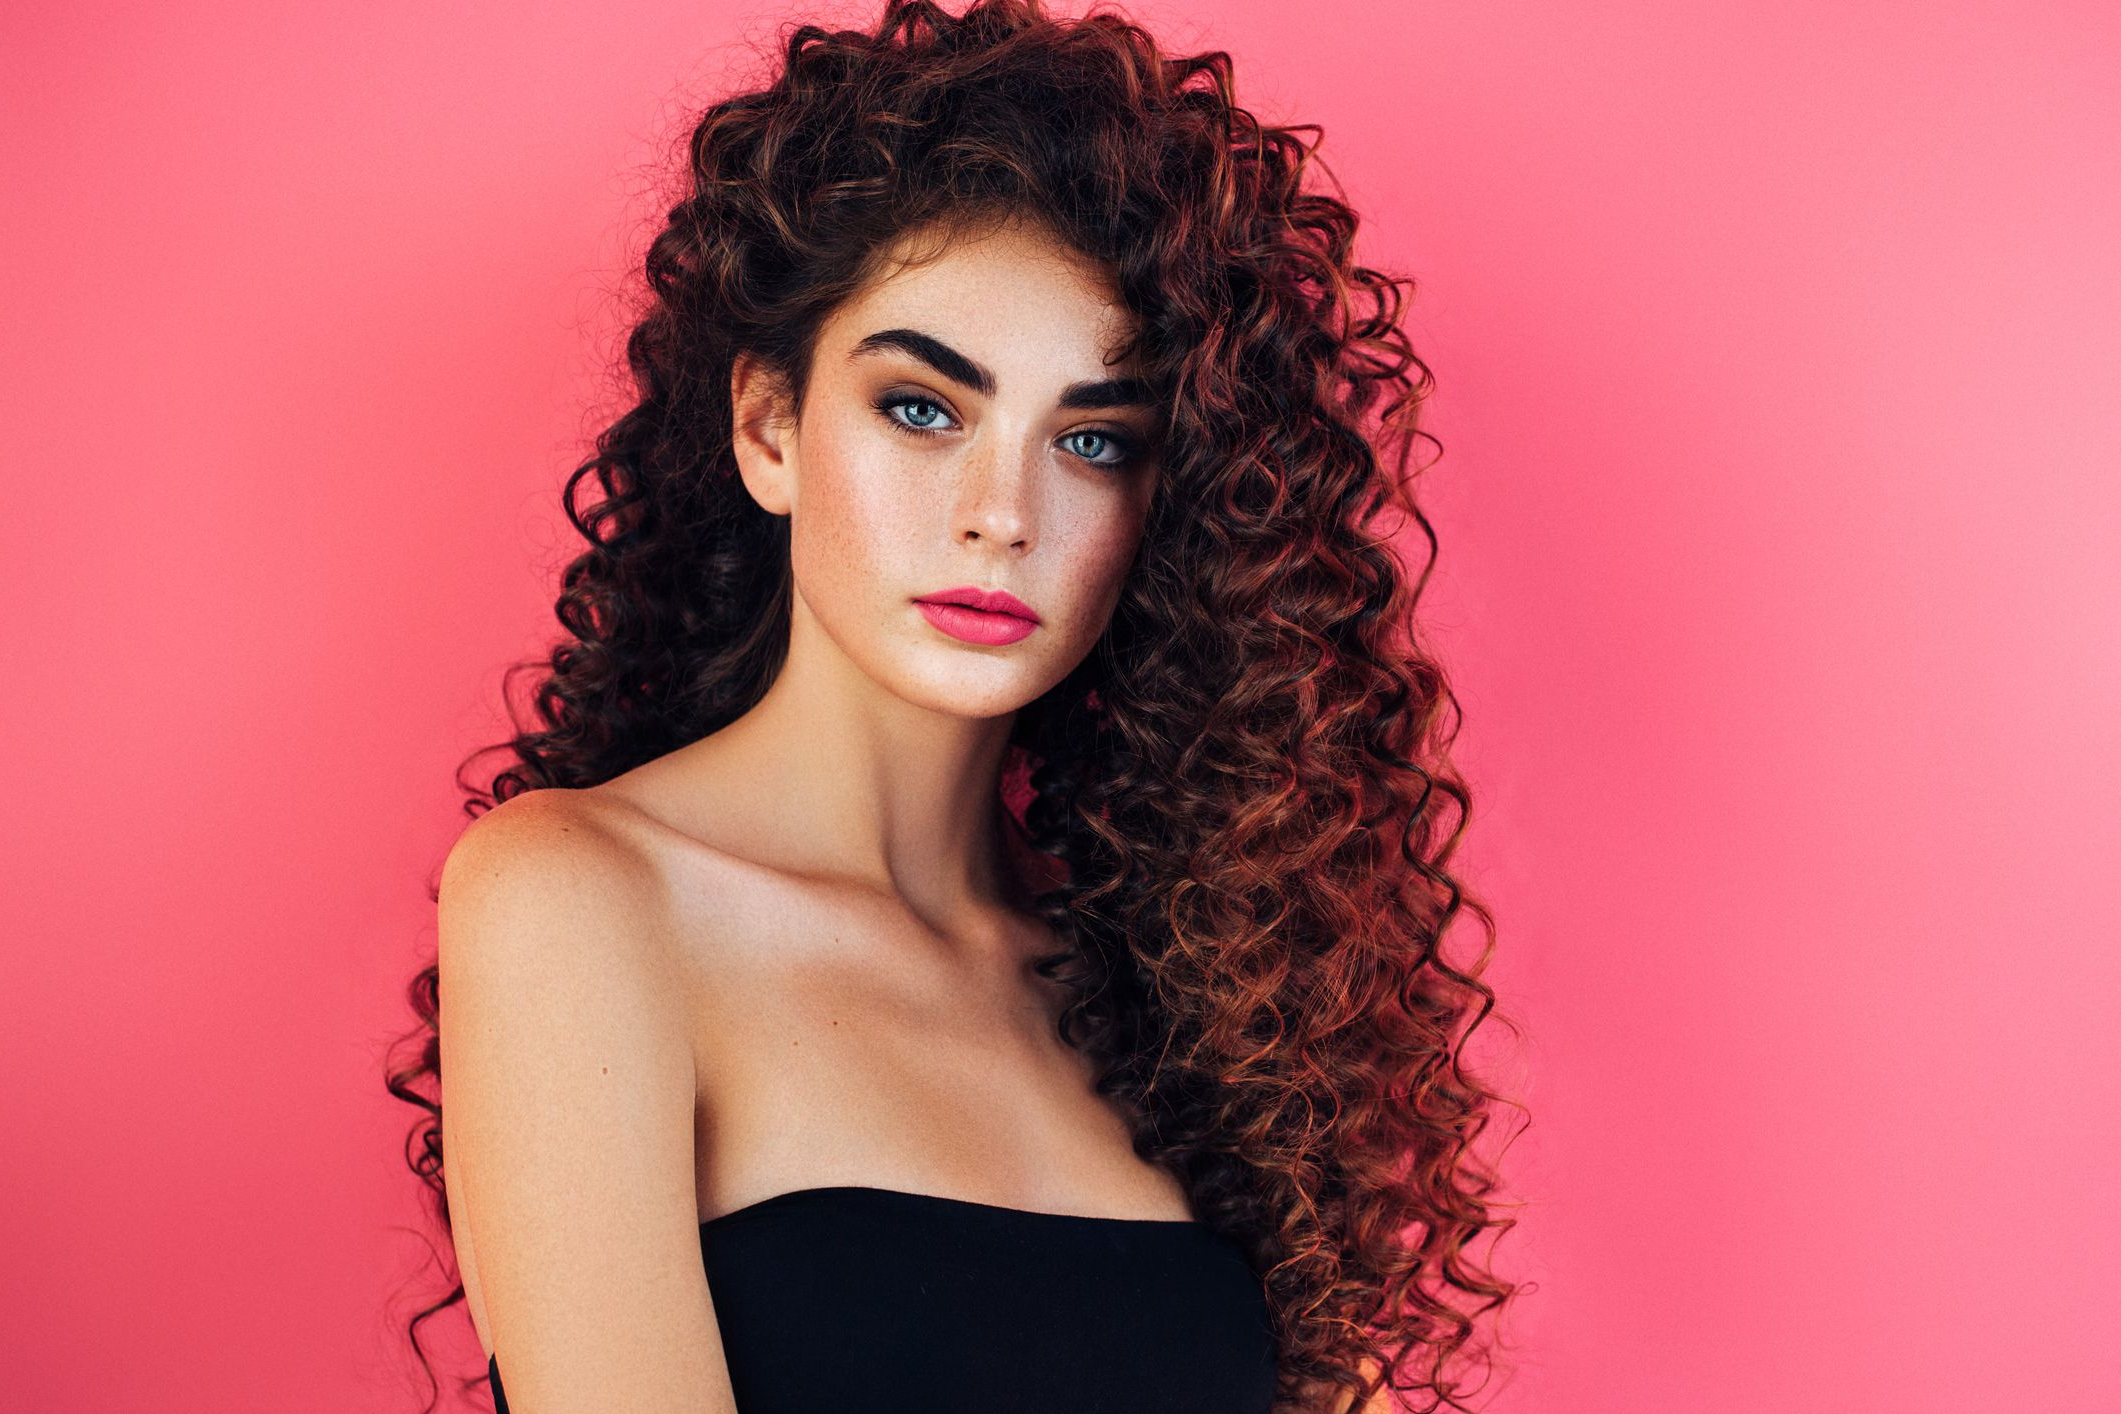 How To Get Thicker Hair — 11 Tips For Making Hair Look Thicker In Most Recent Luscious Curls Hairstyles With Puffy Crown (View 11 of 20)